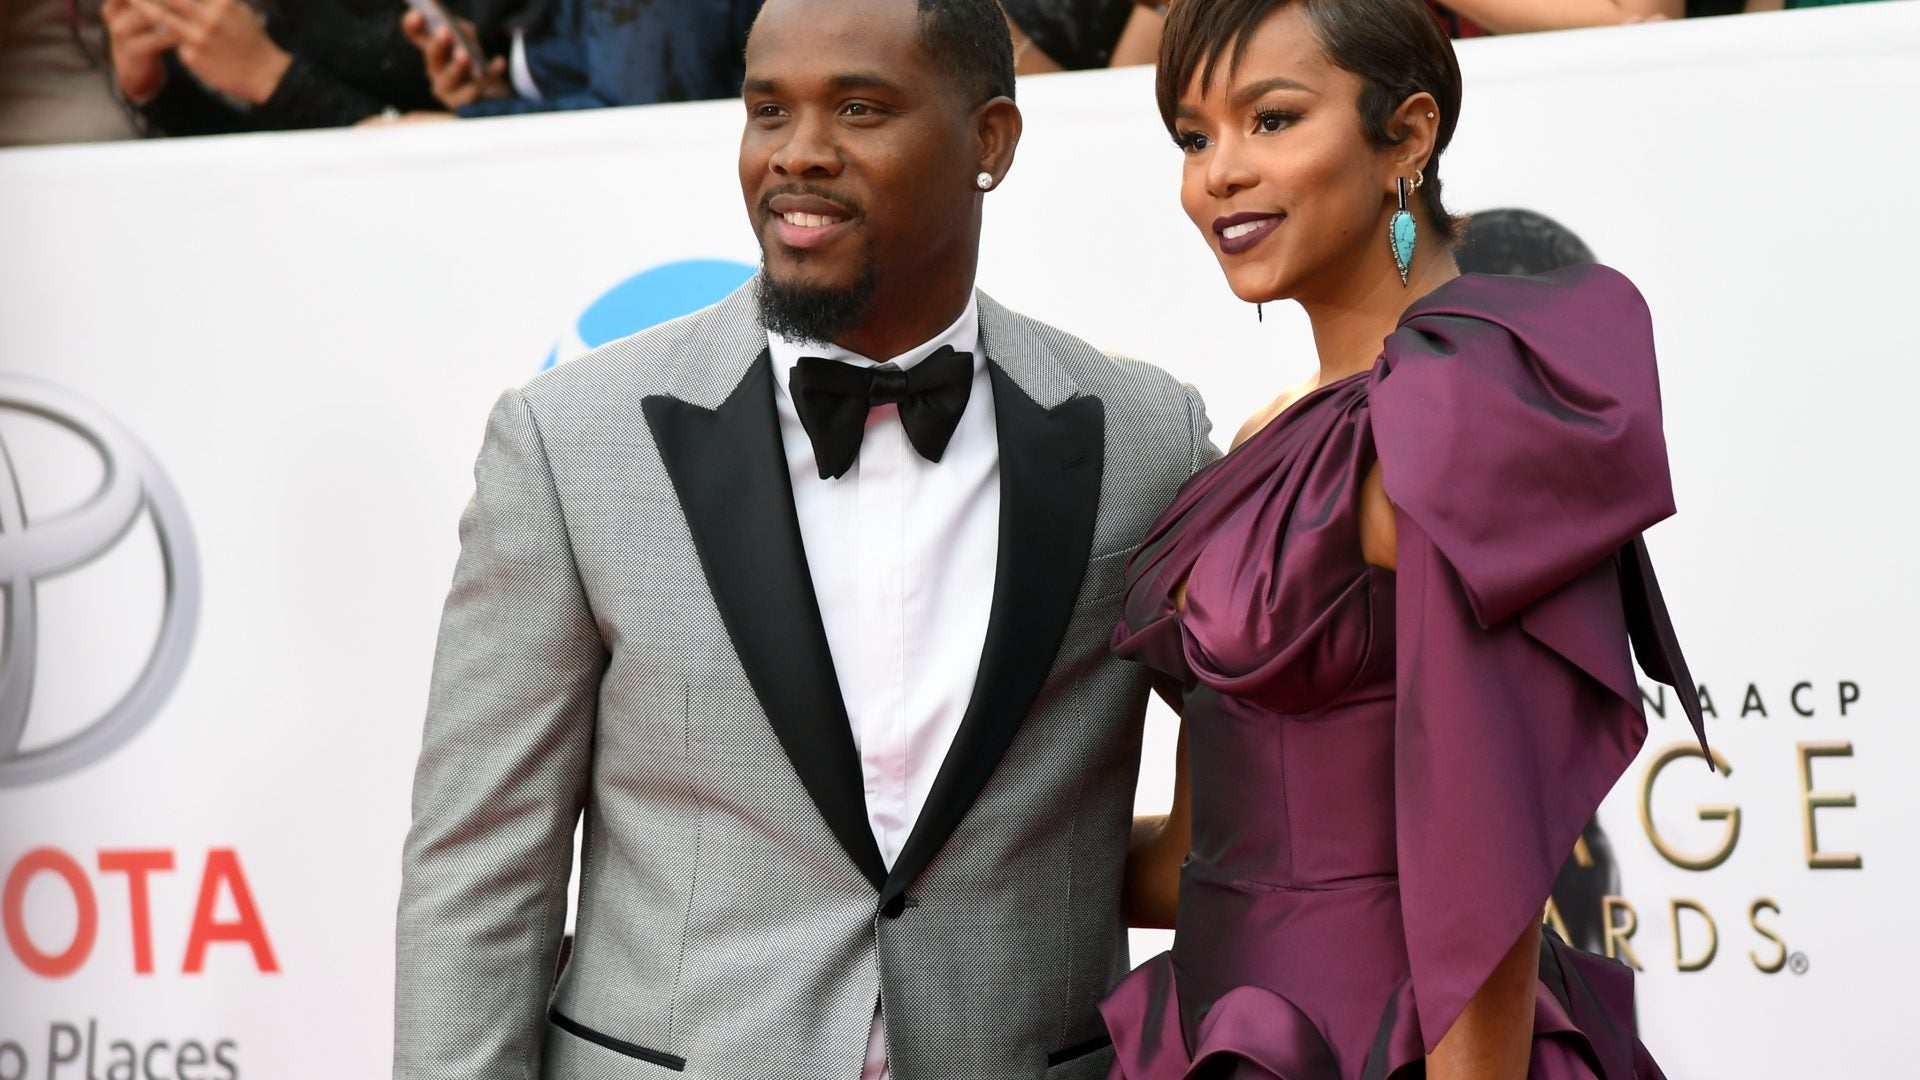 LeToya Luckett And Tommicus Walker Announce Their Divorce